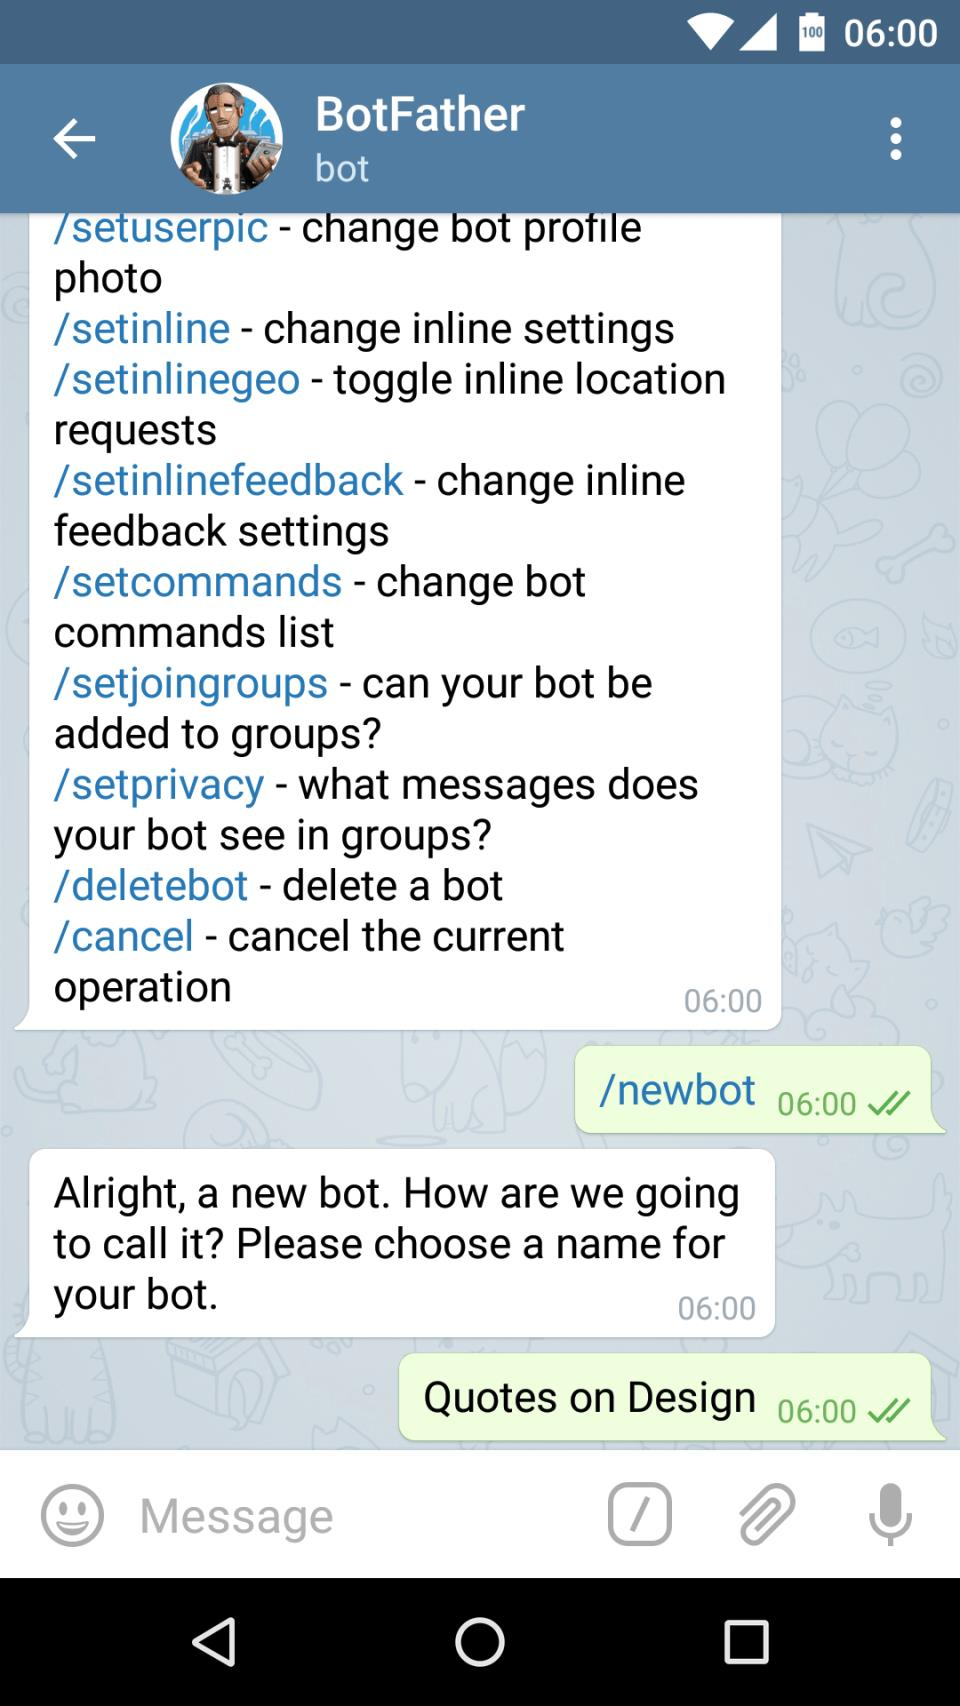 Give your bot a name